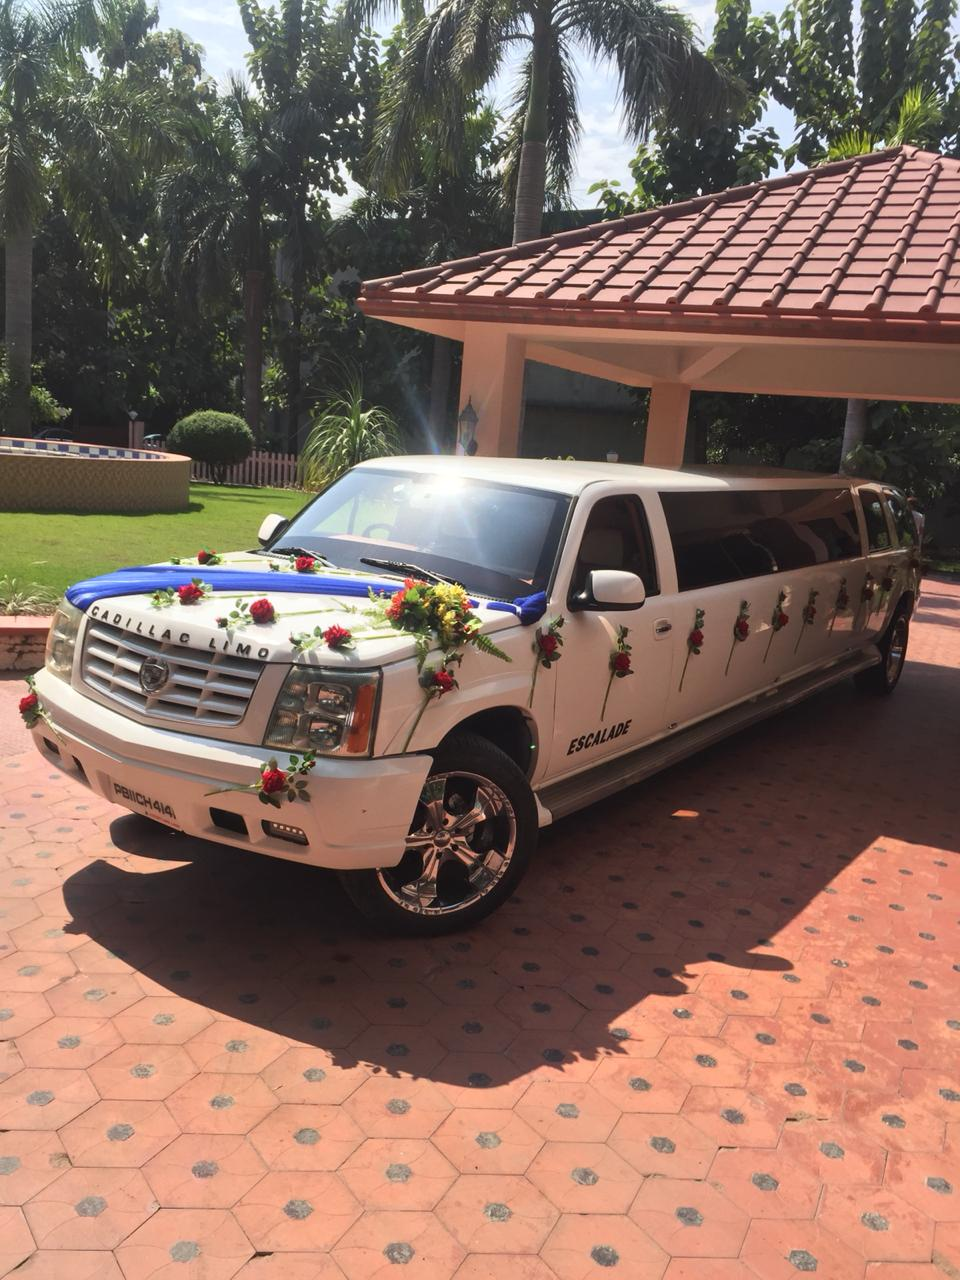 Hire Limousine in Punjab